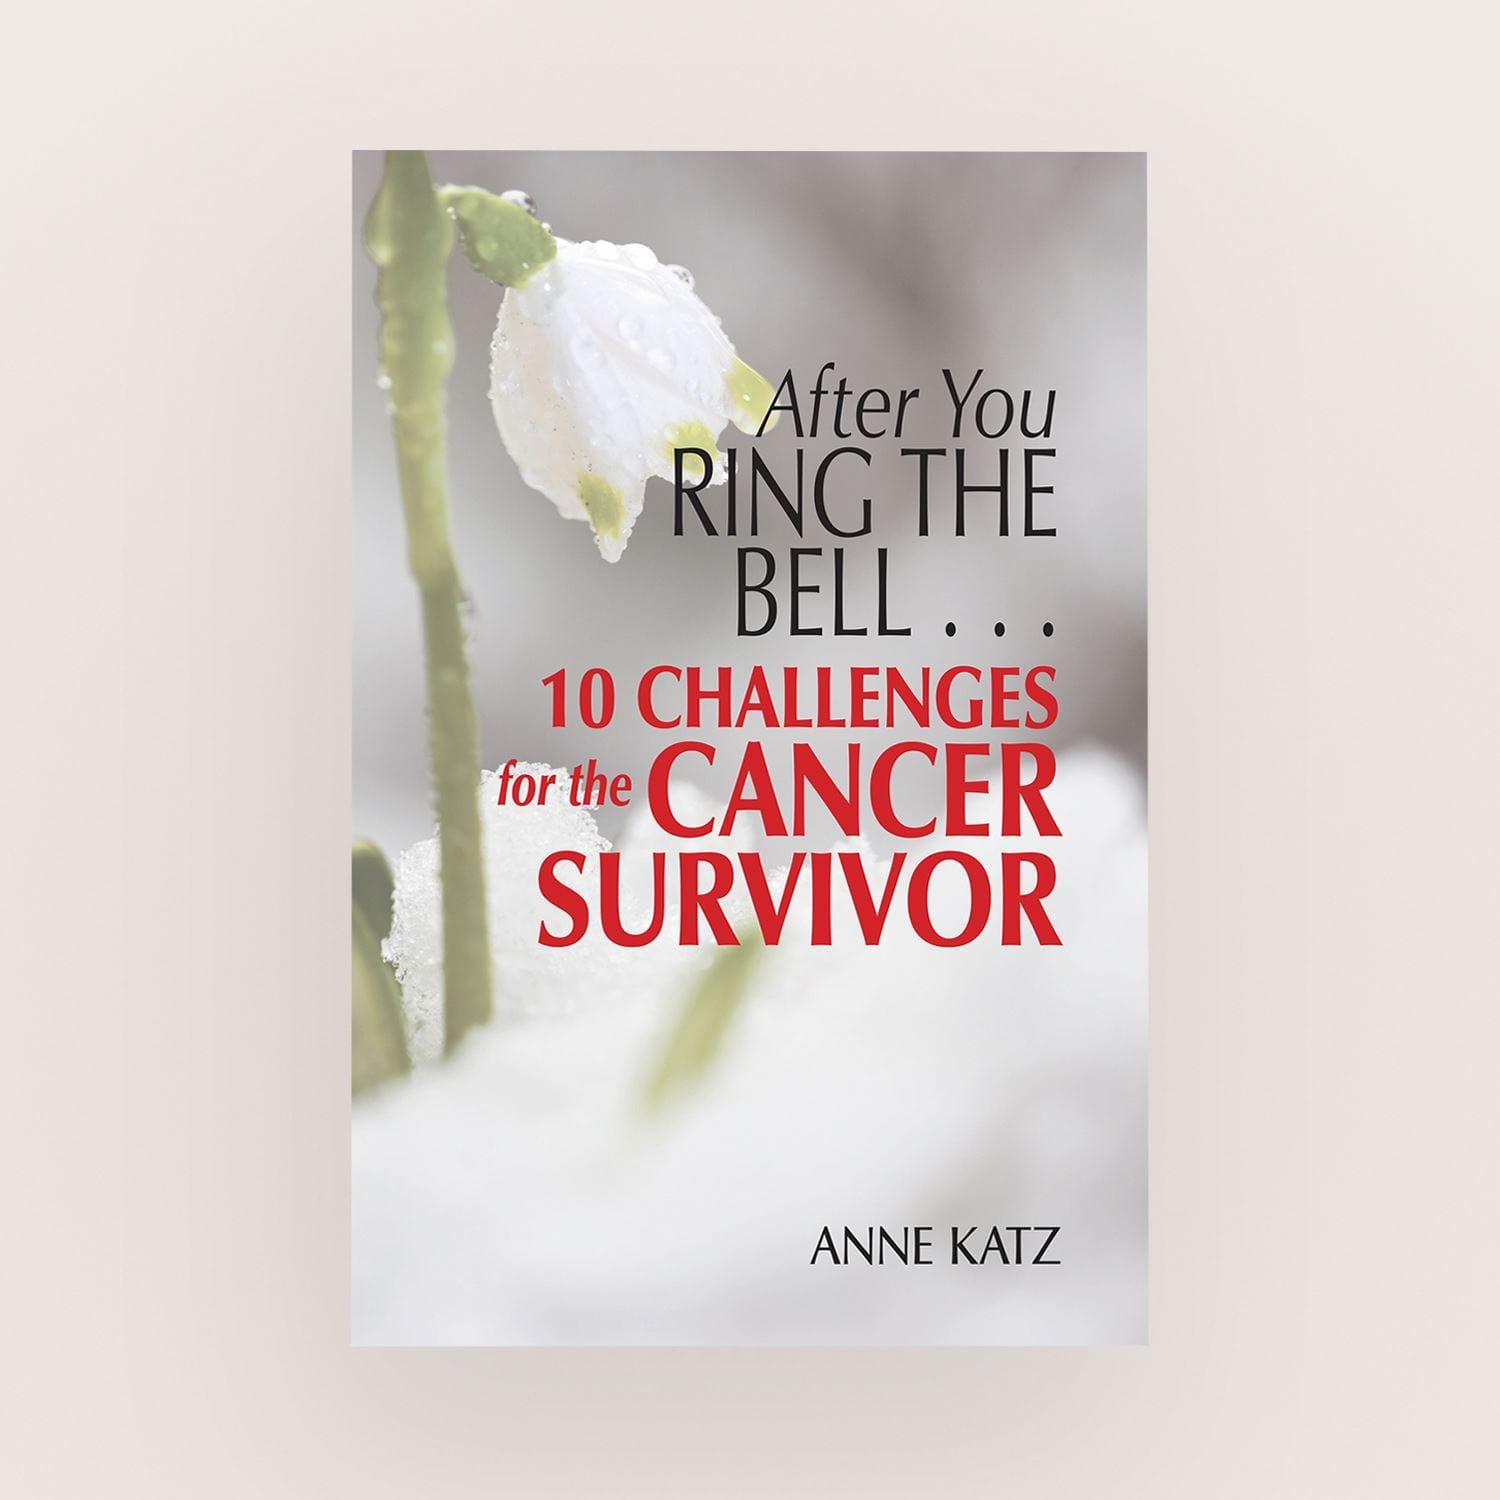 After You Ring The Bell by Anne Katz